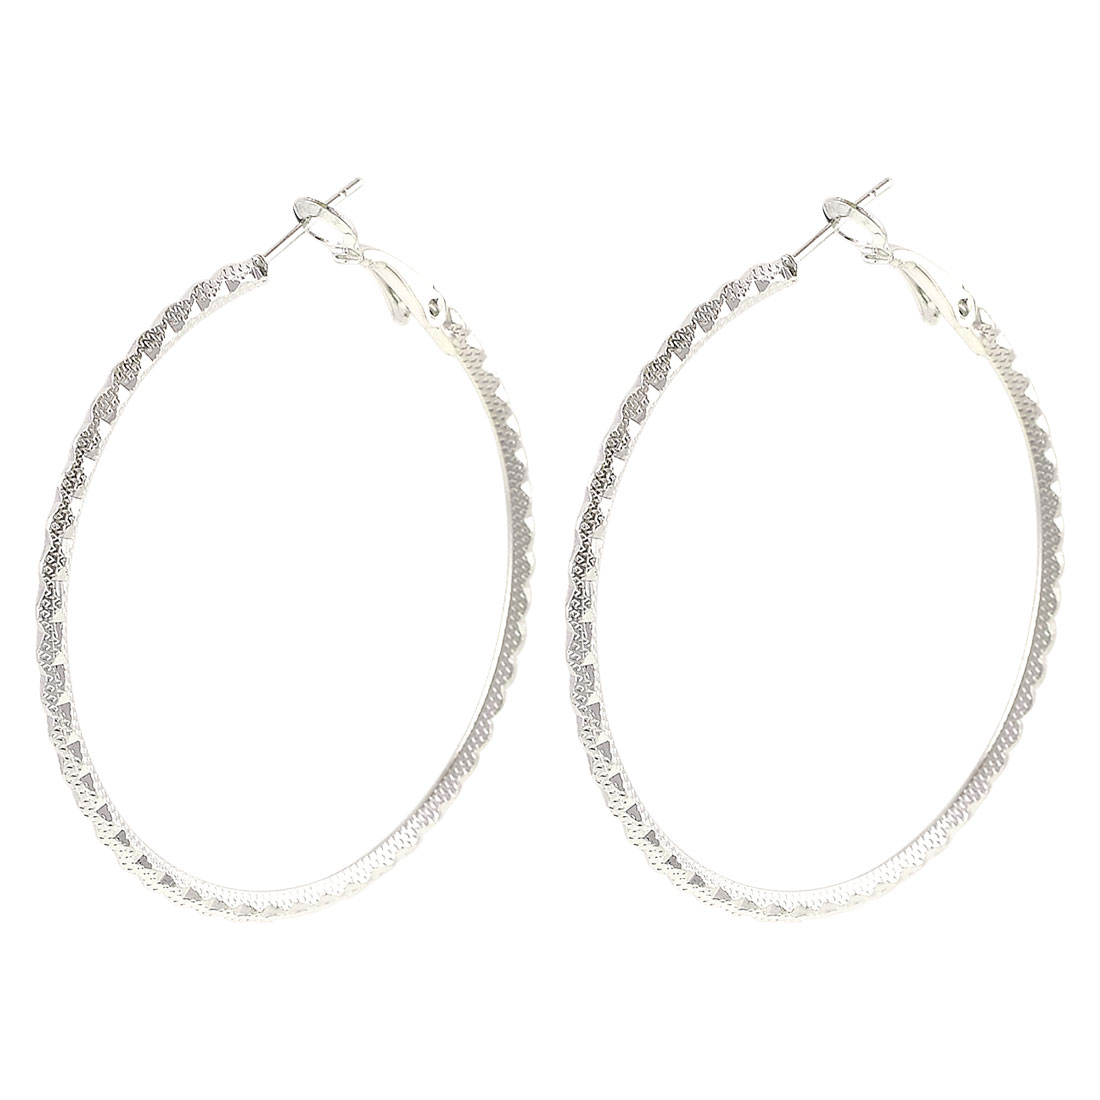 Woman Textured Metal Spring Hoop Earrings Silver Tone Pair